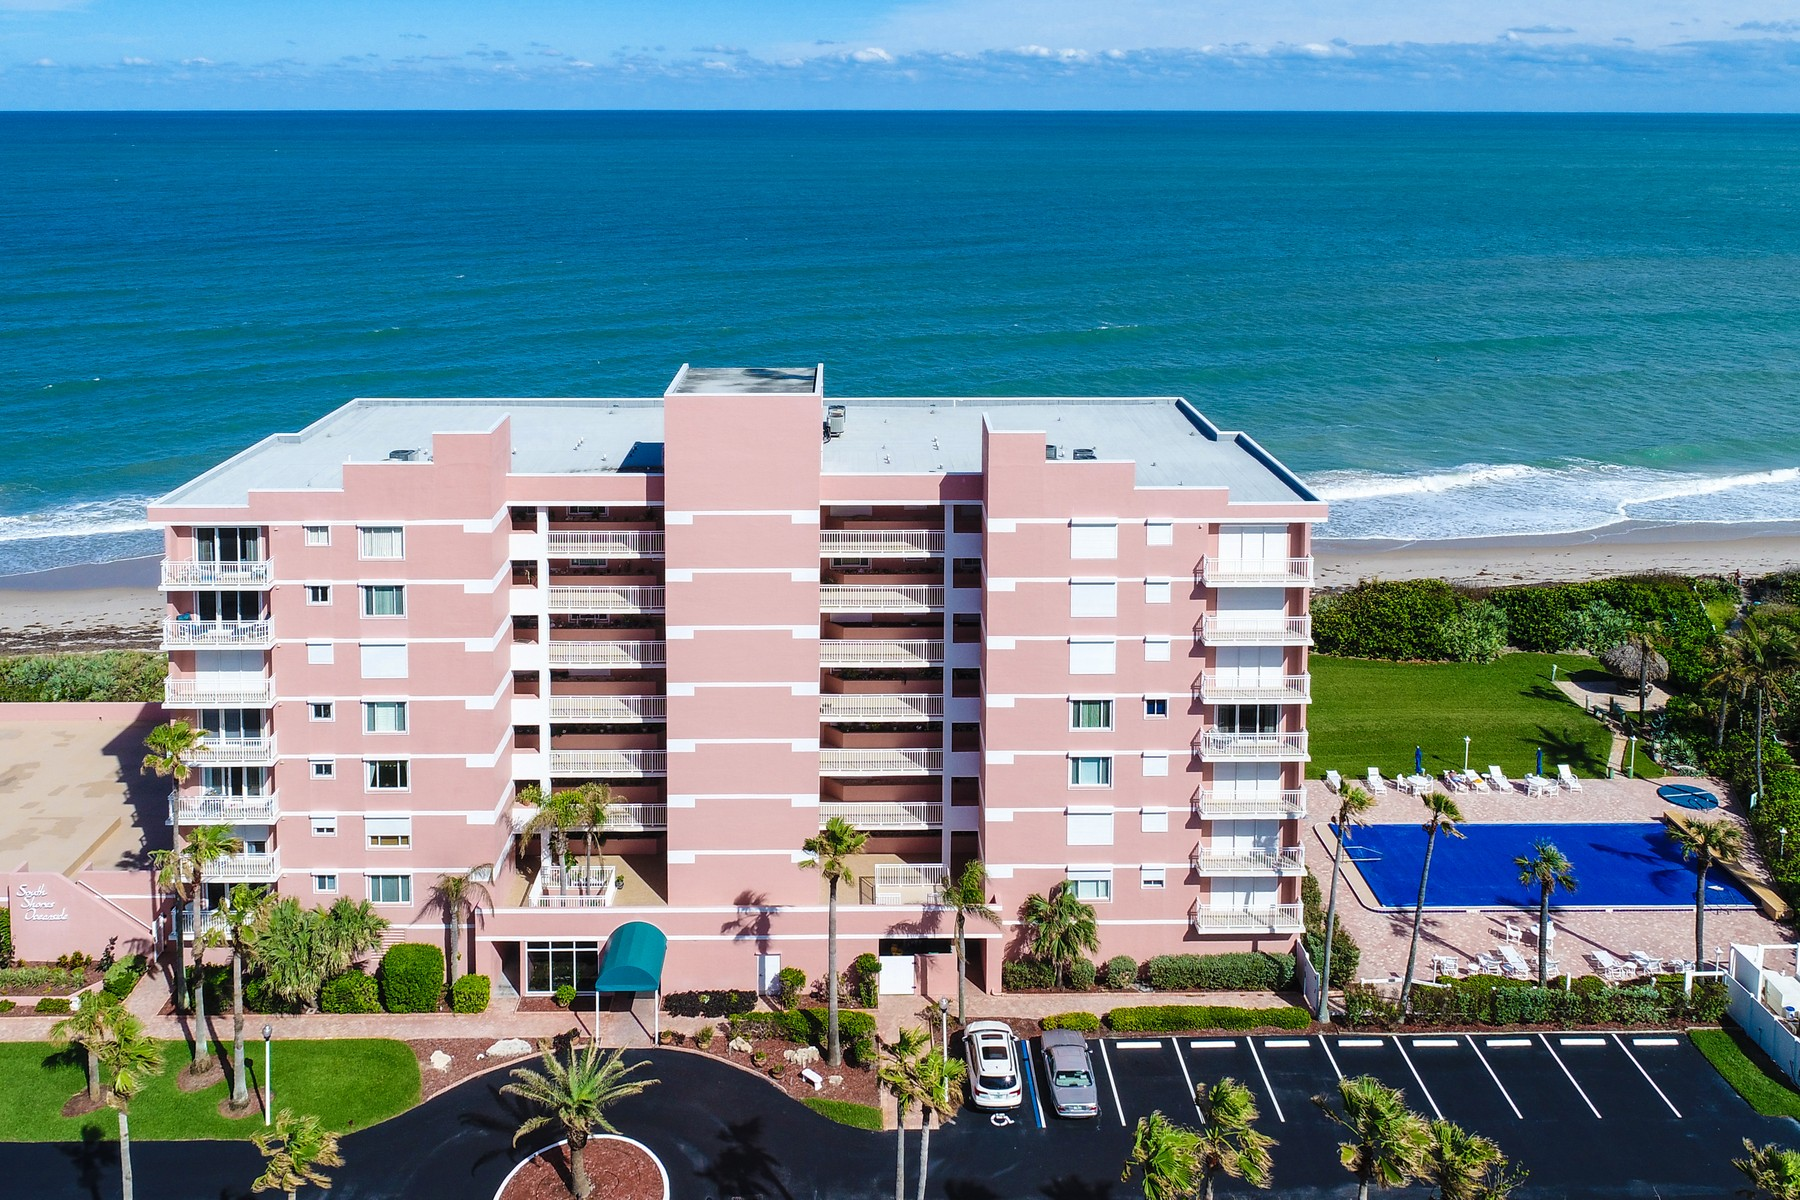 Property for Sale at South Shores Oceanside Condo 5635 S Highway A1A #803 Melbourne Beach, Florida 32951 United States